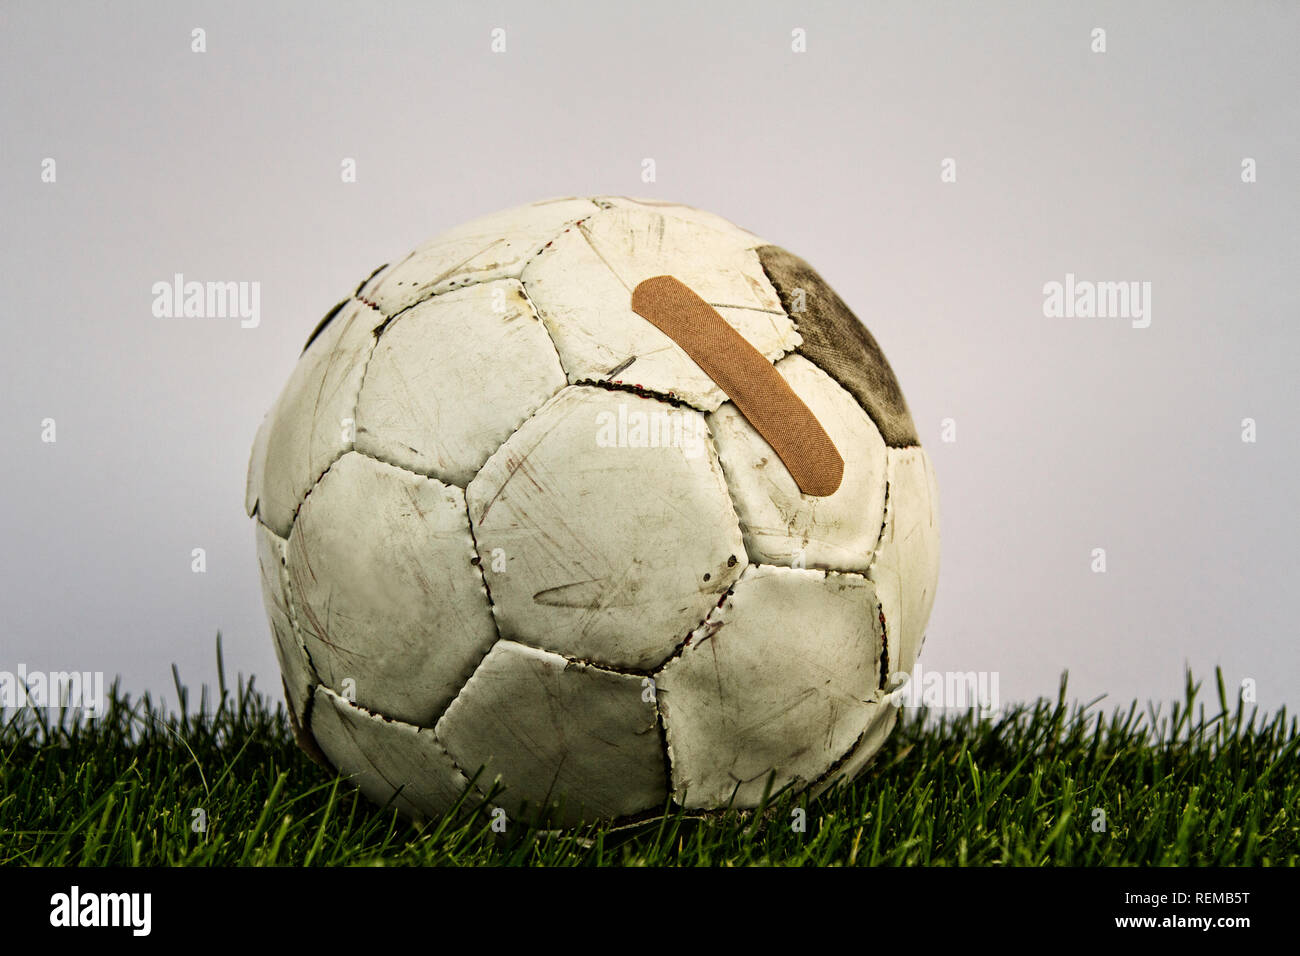 Old soccer ball with band aid on grass with white background - Stock Image